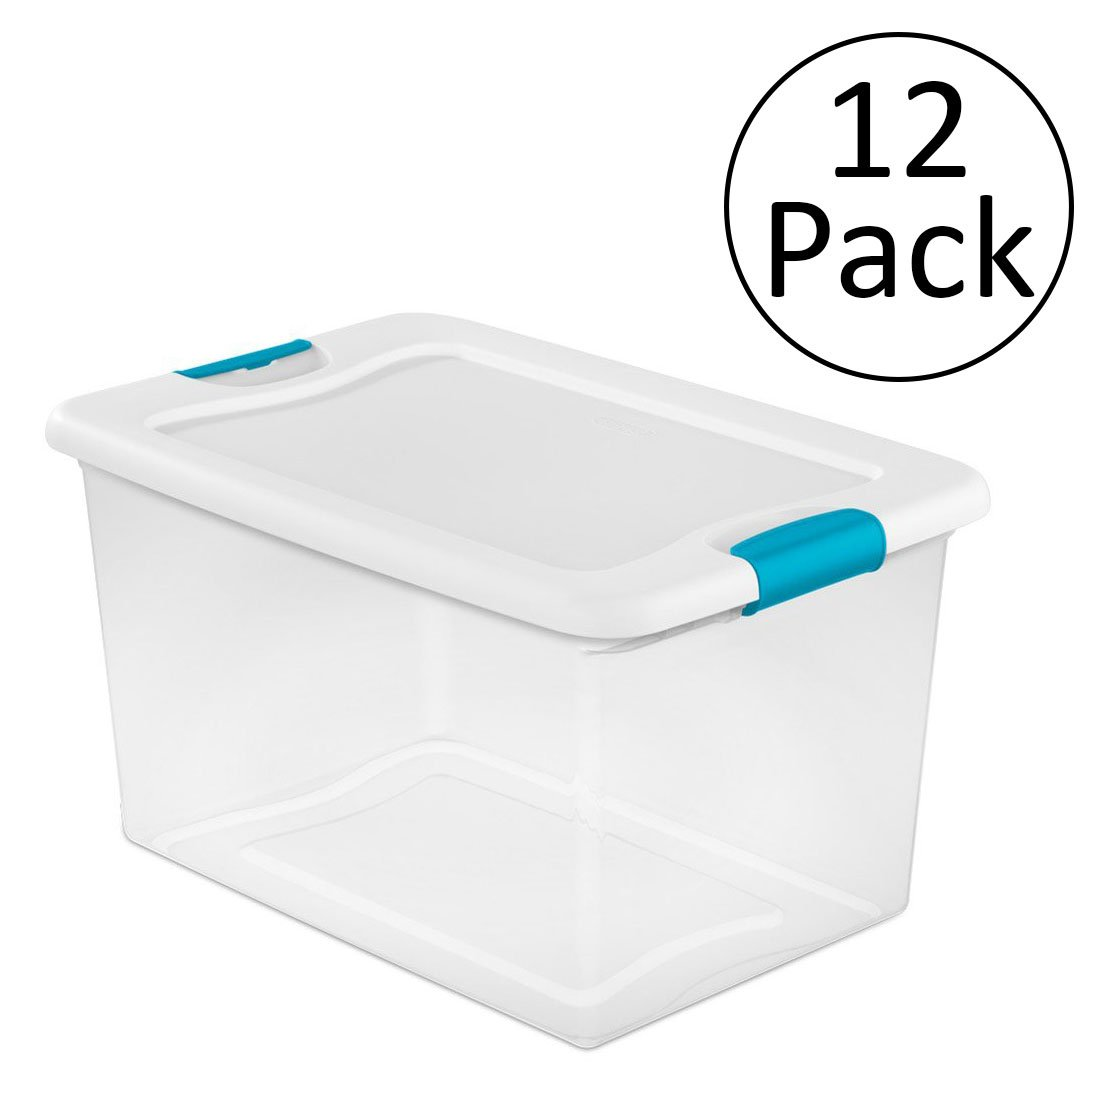 Sterilite 64 Quart Latching Plastic Storage Box, Clear w/ Blue Latches (12 Pack)